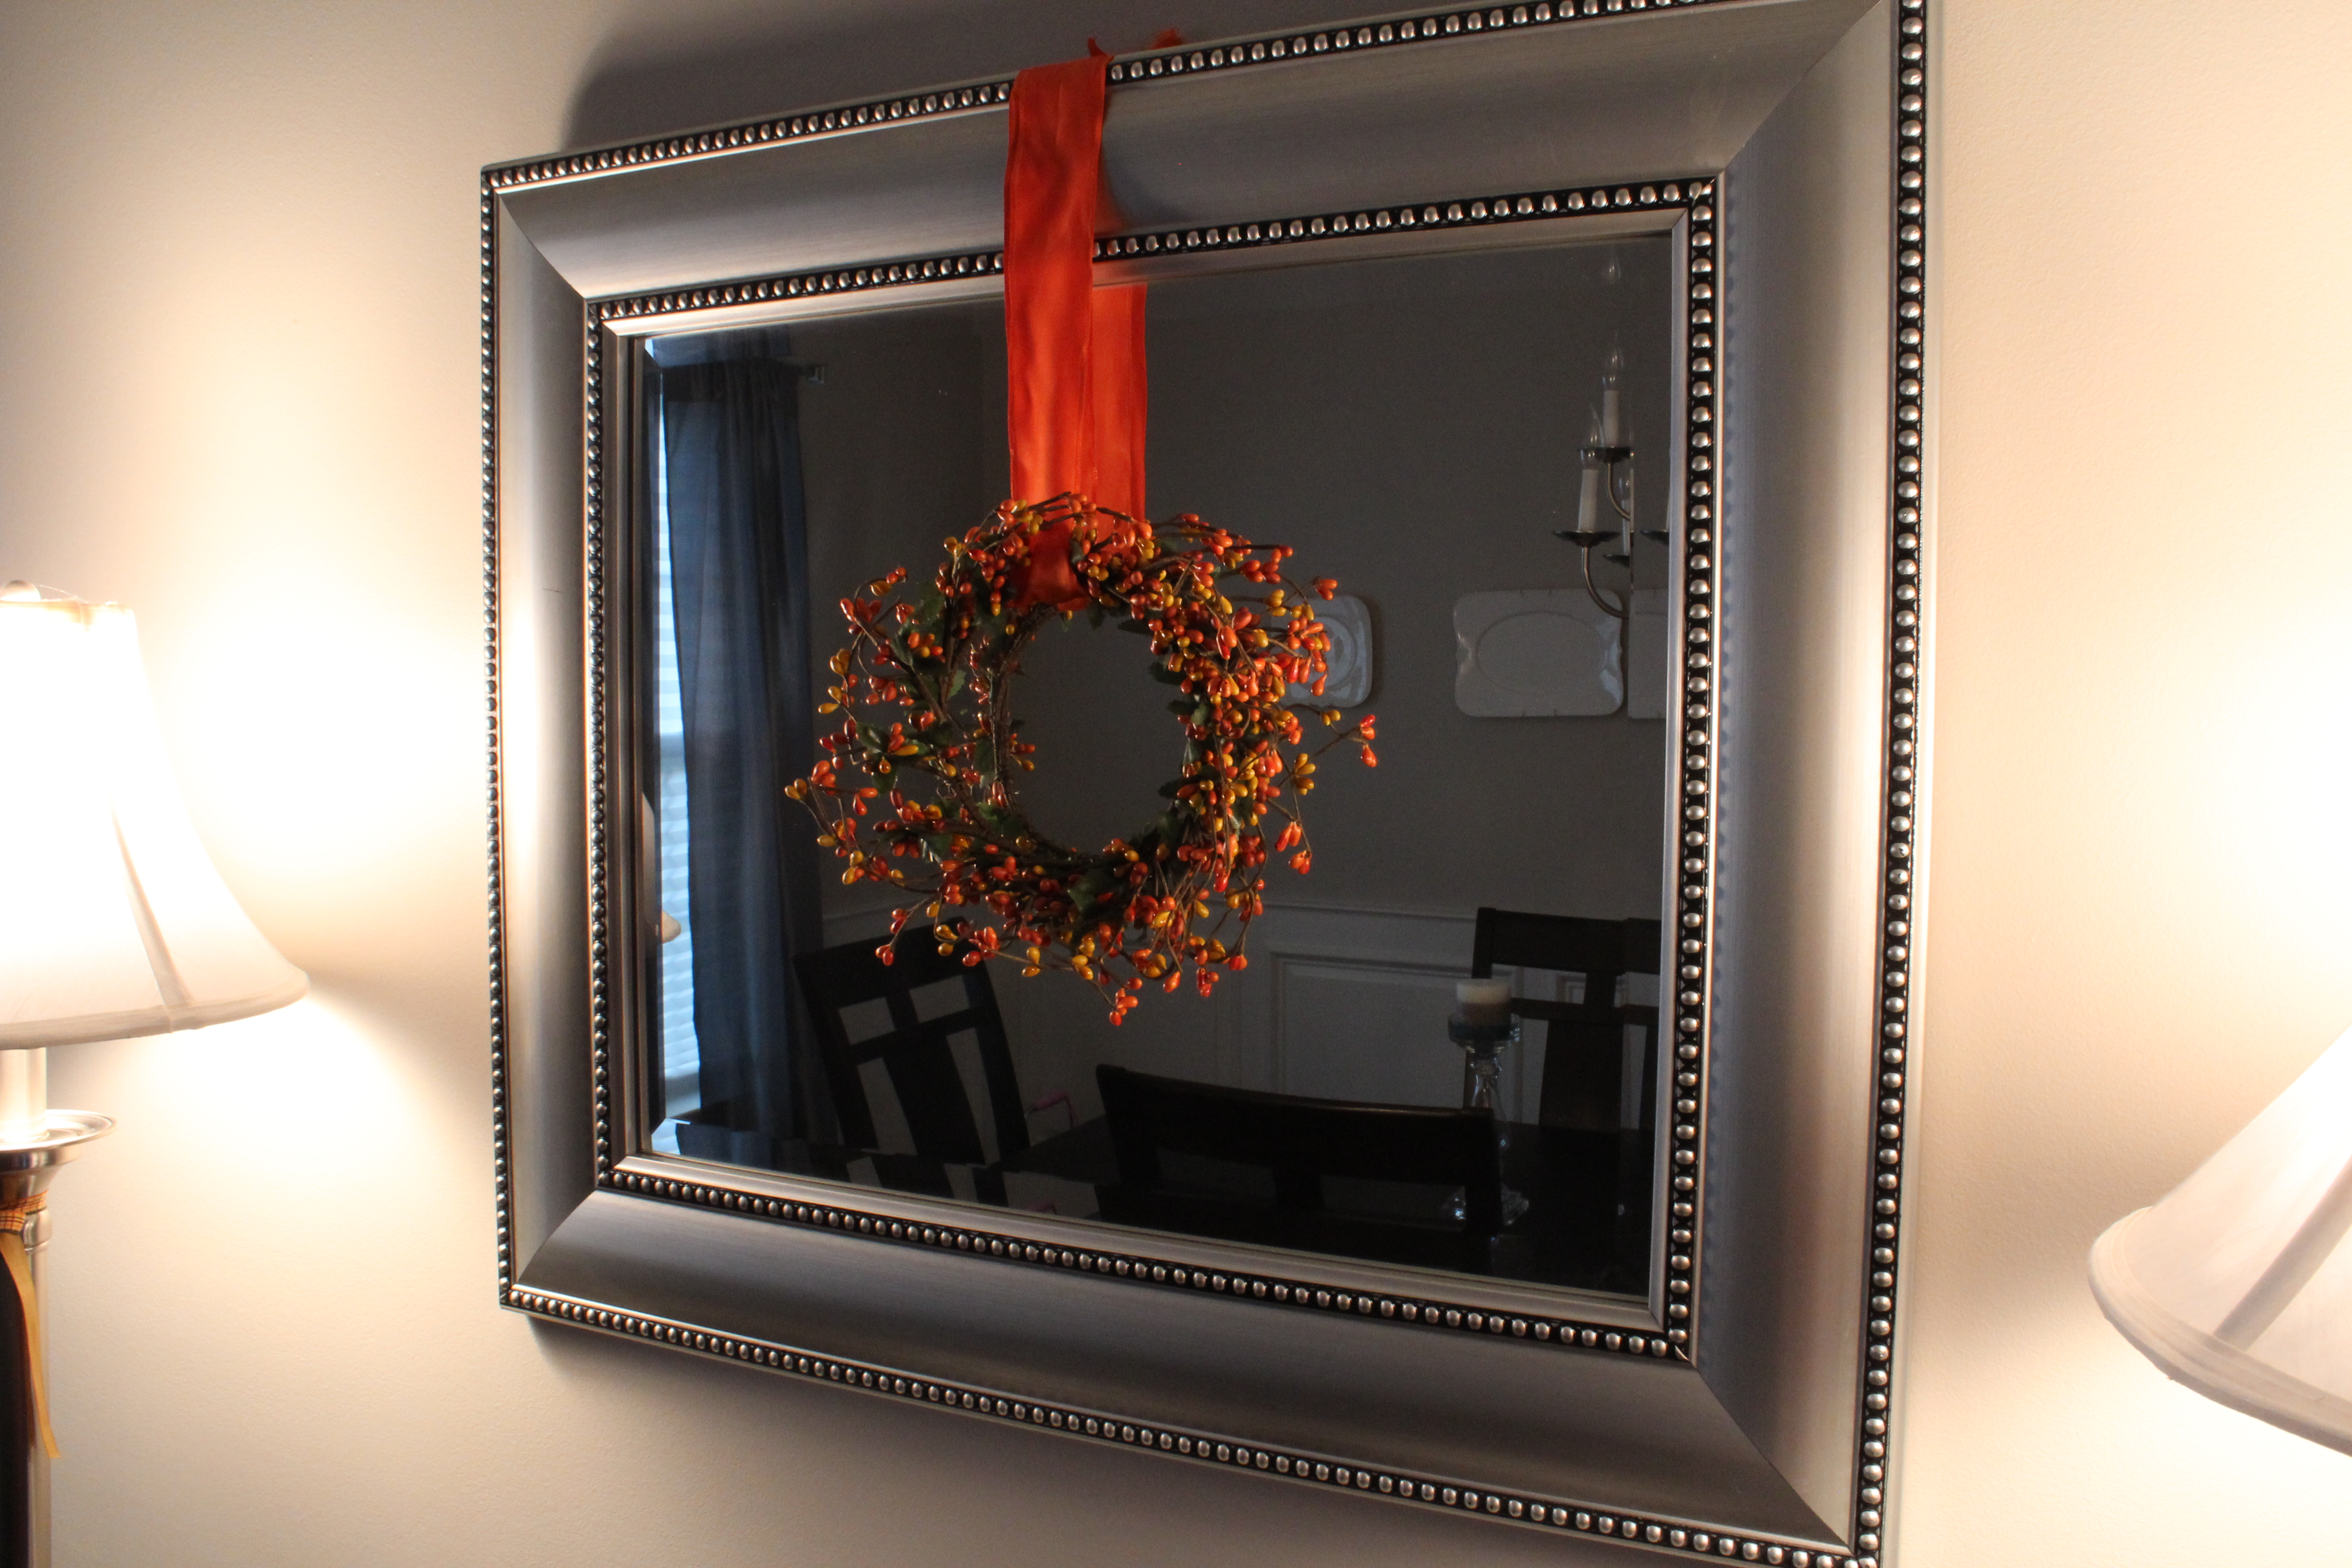 mirror-wreath